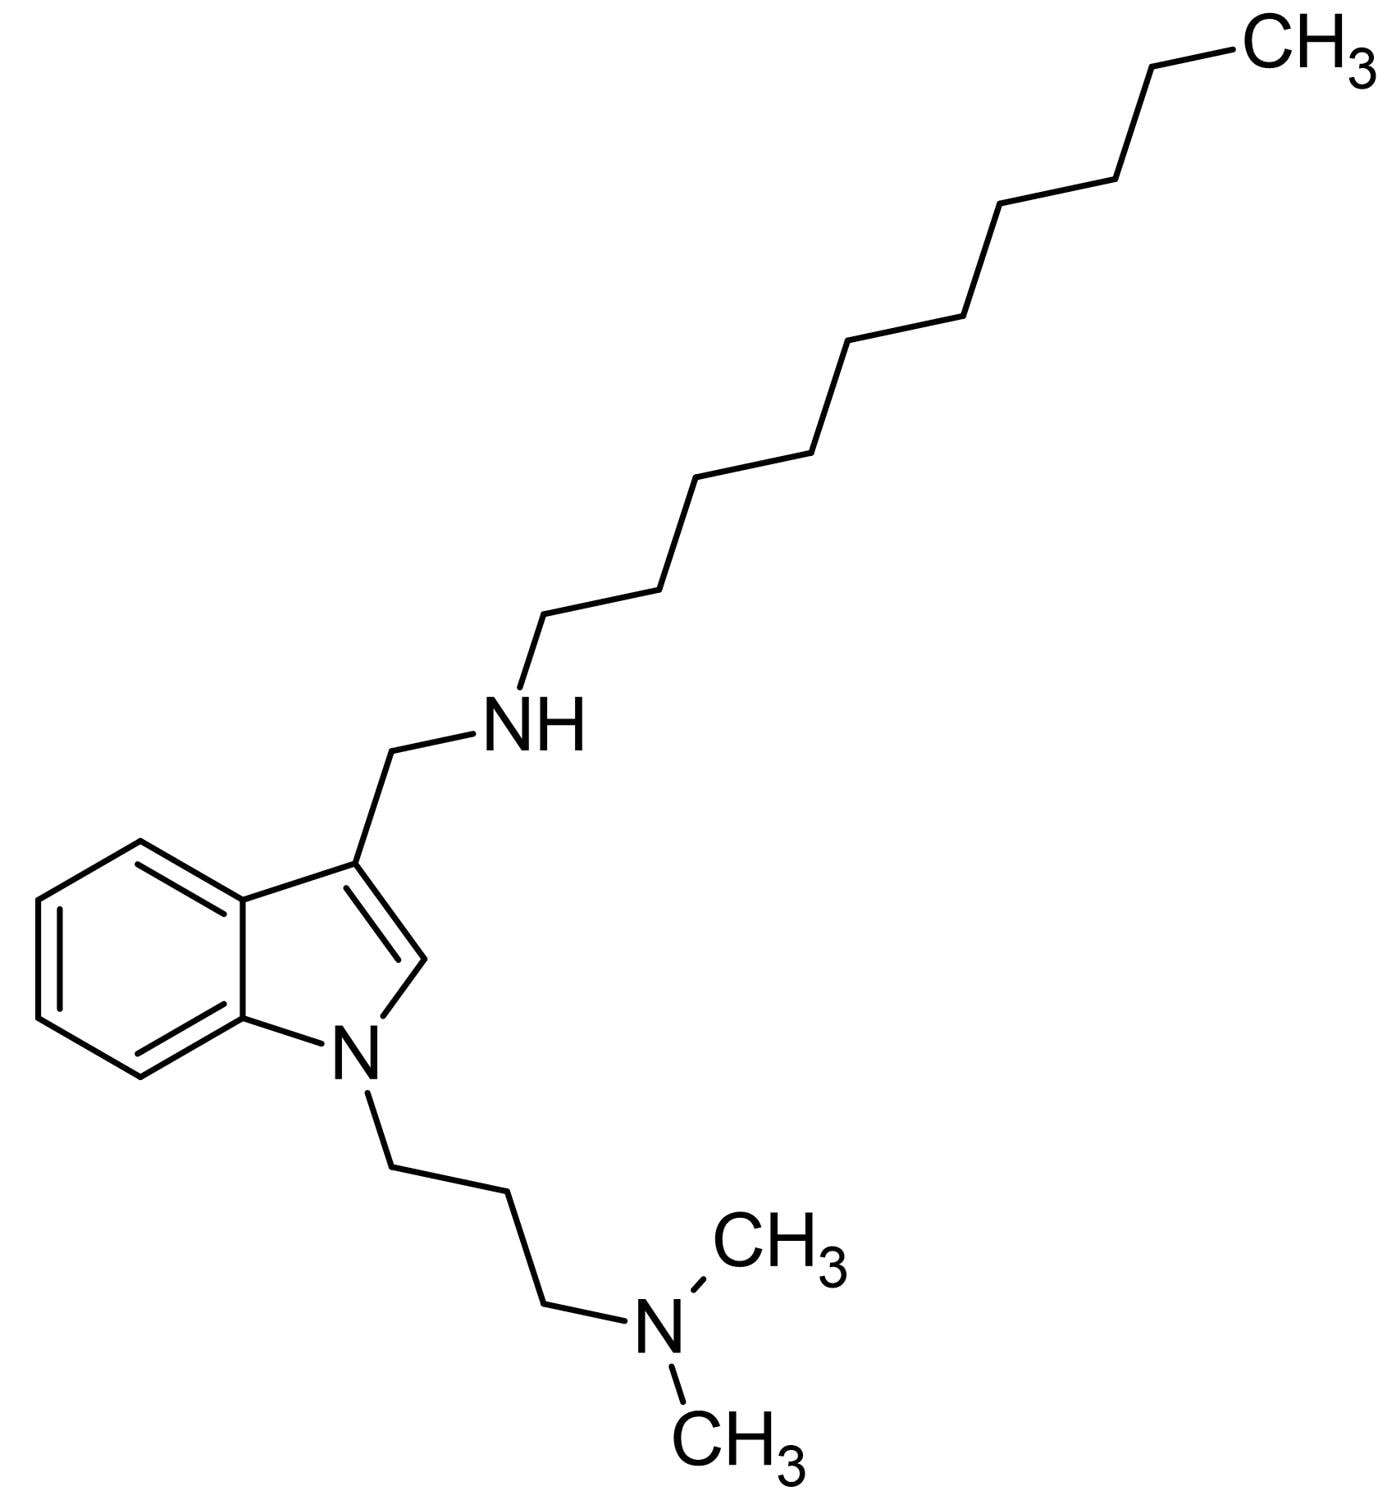 Chemical Structure - Dynole<sup>&reg;</sup> 2-24, Dynamin I and II inhibitor (ab141290)